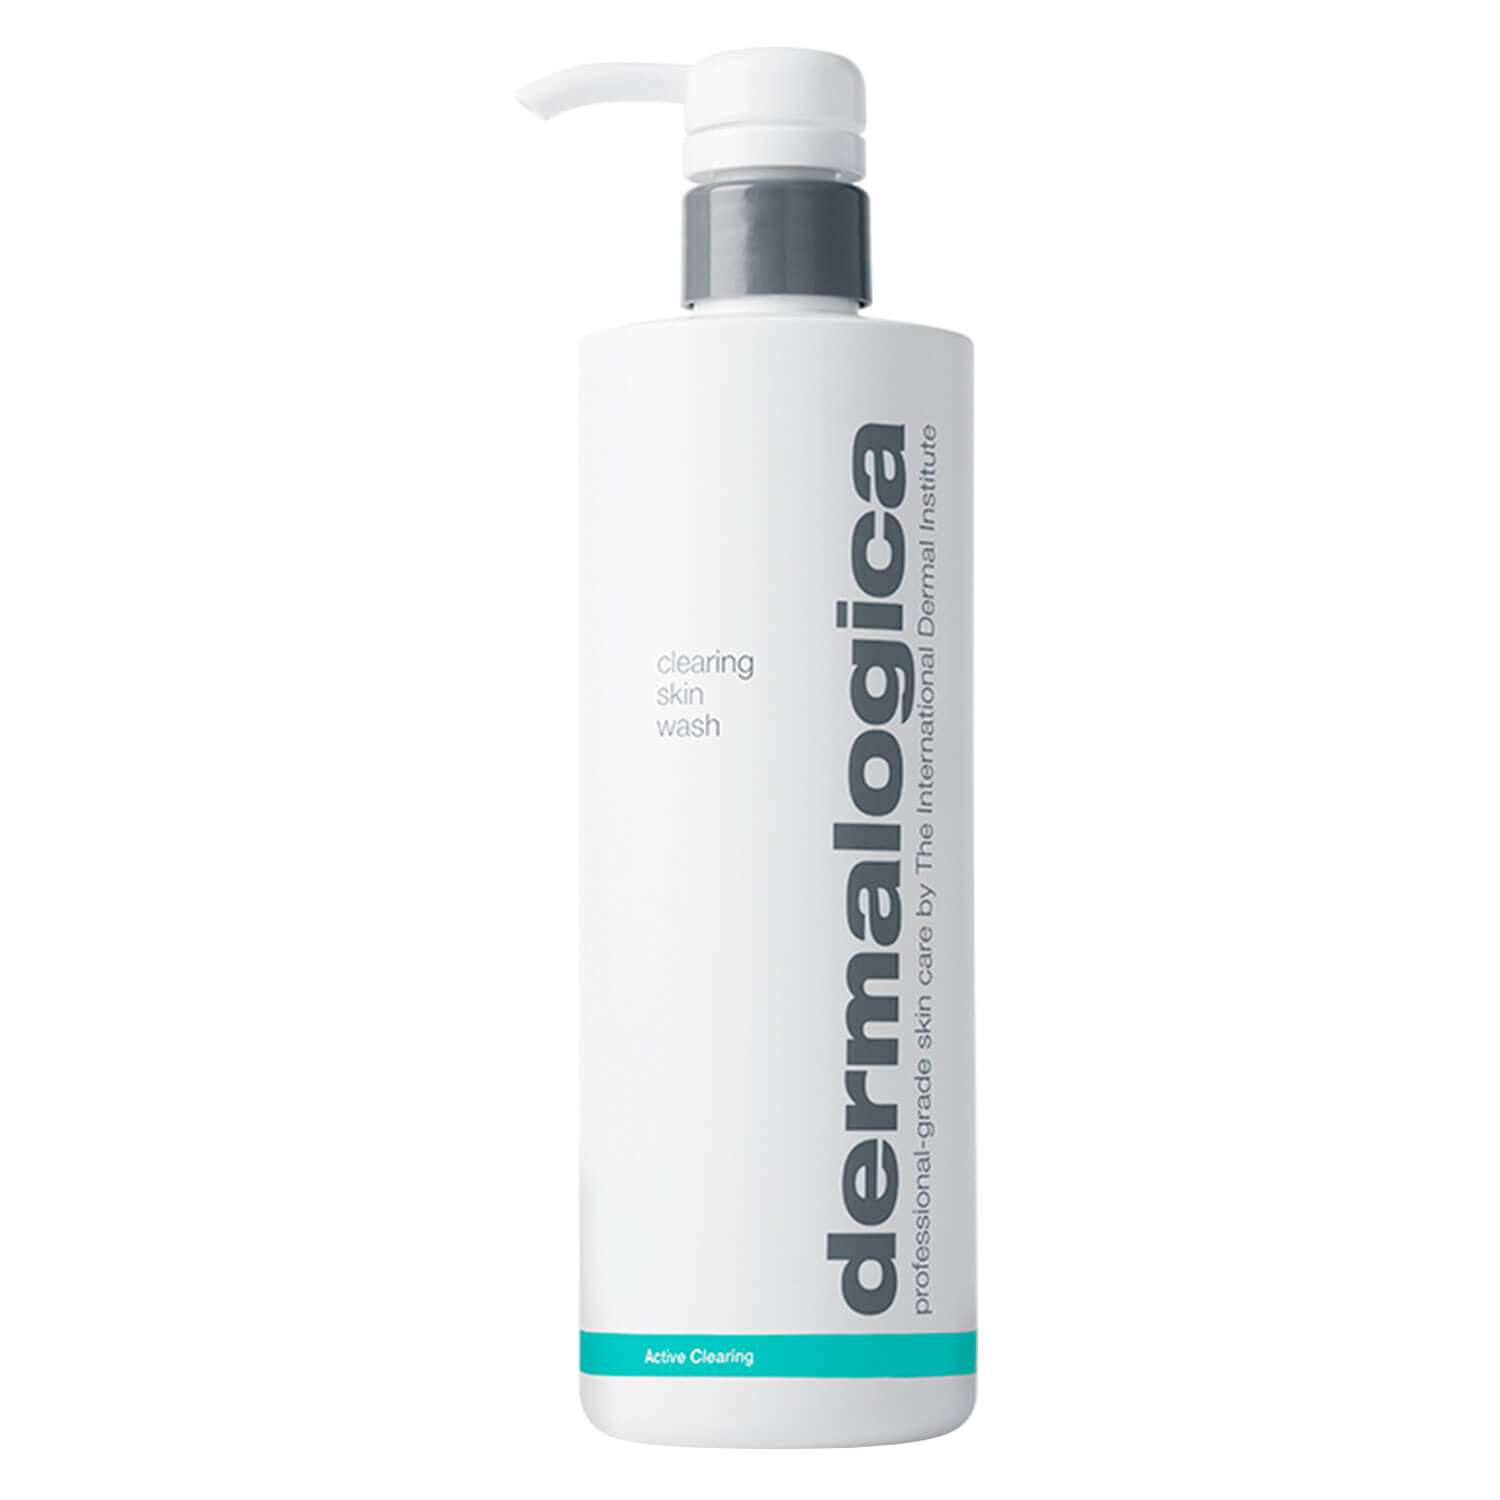 Active Clearing - Clearing Skin Wash